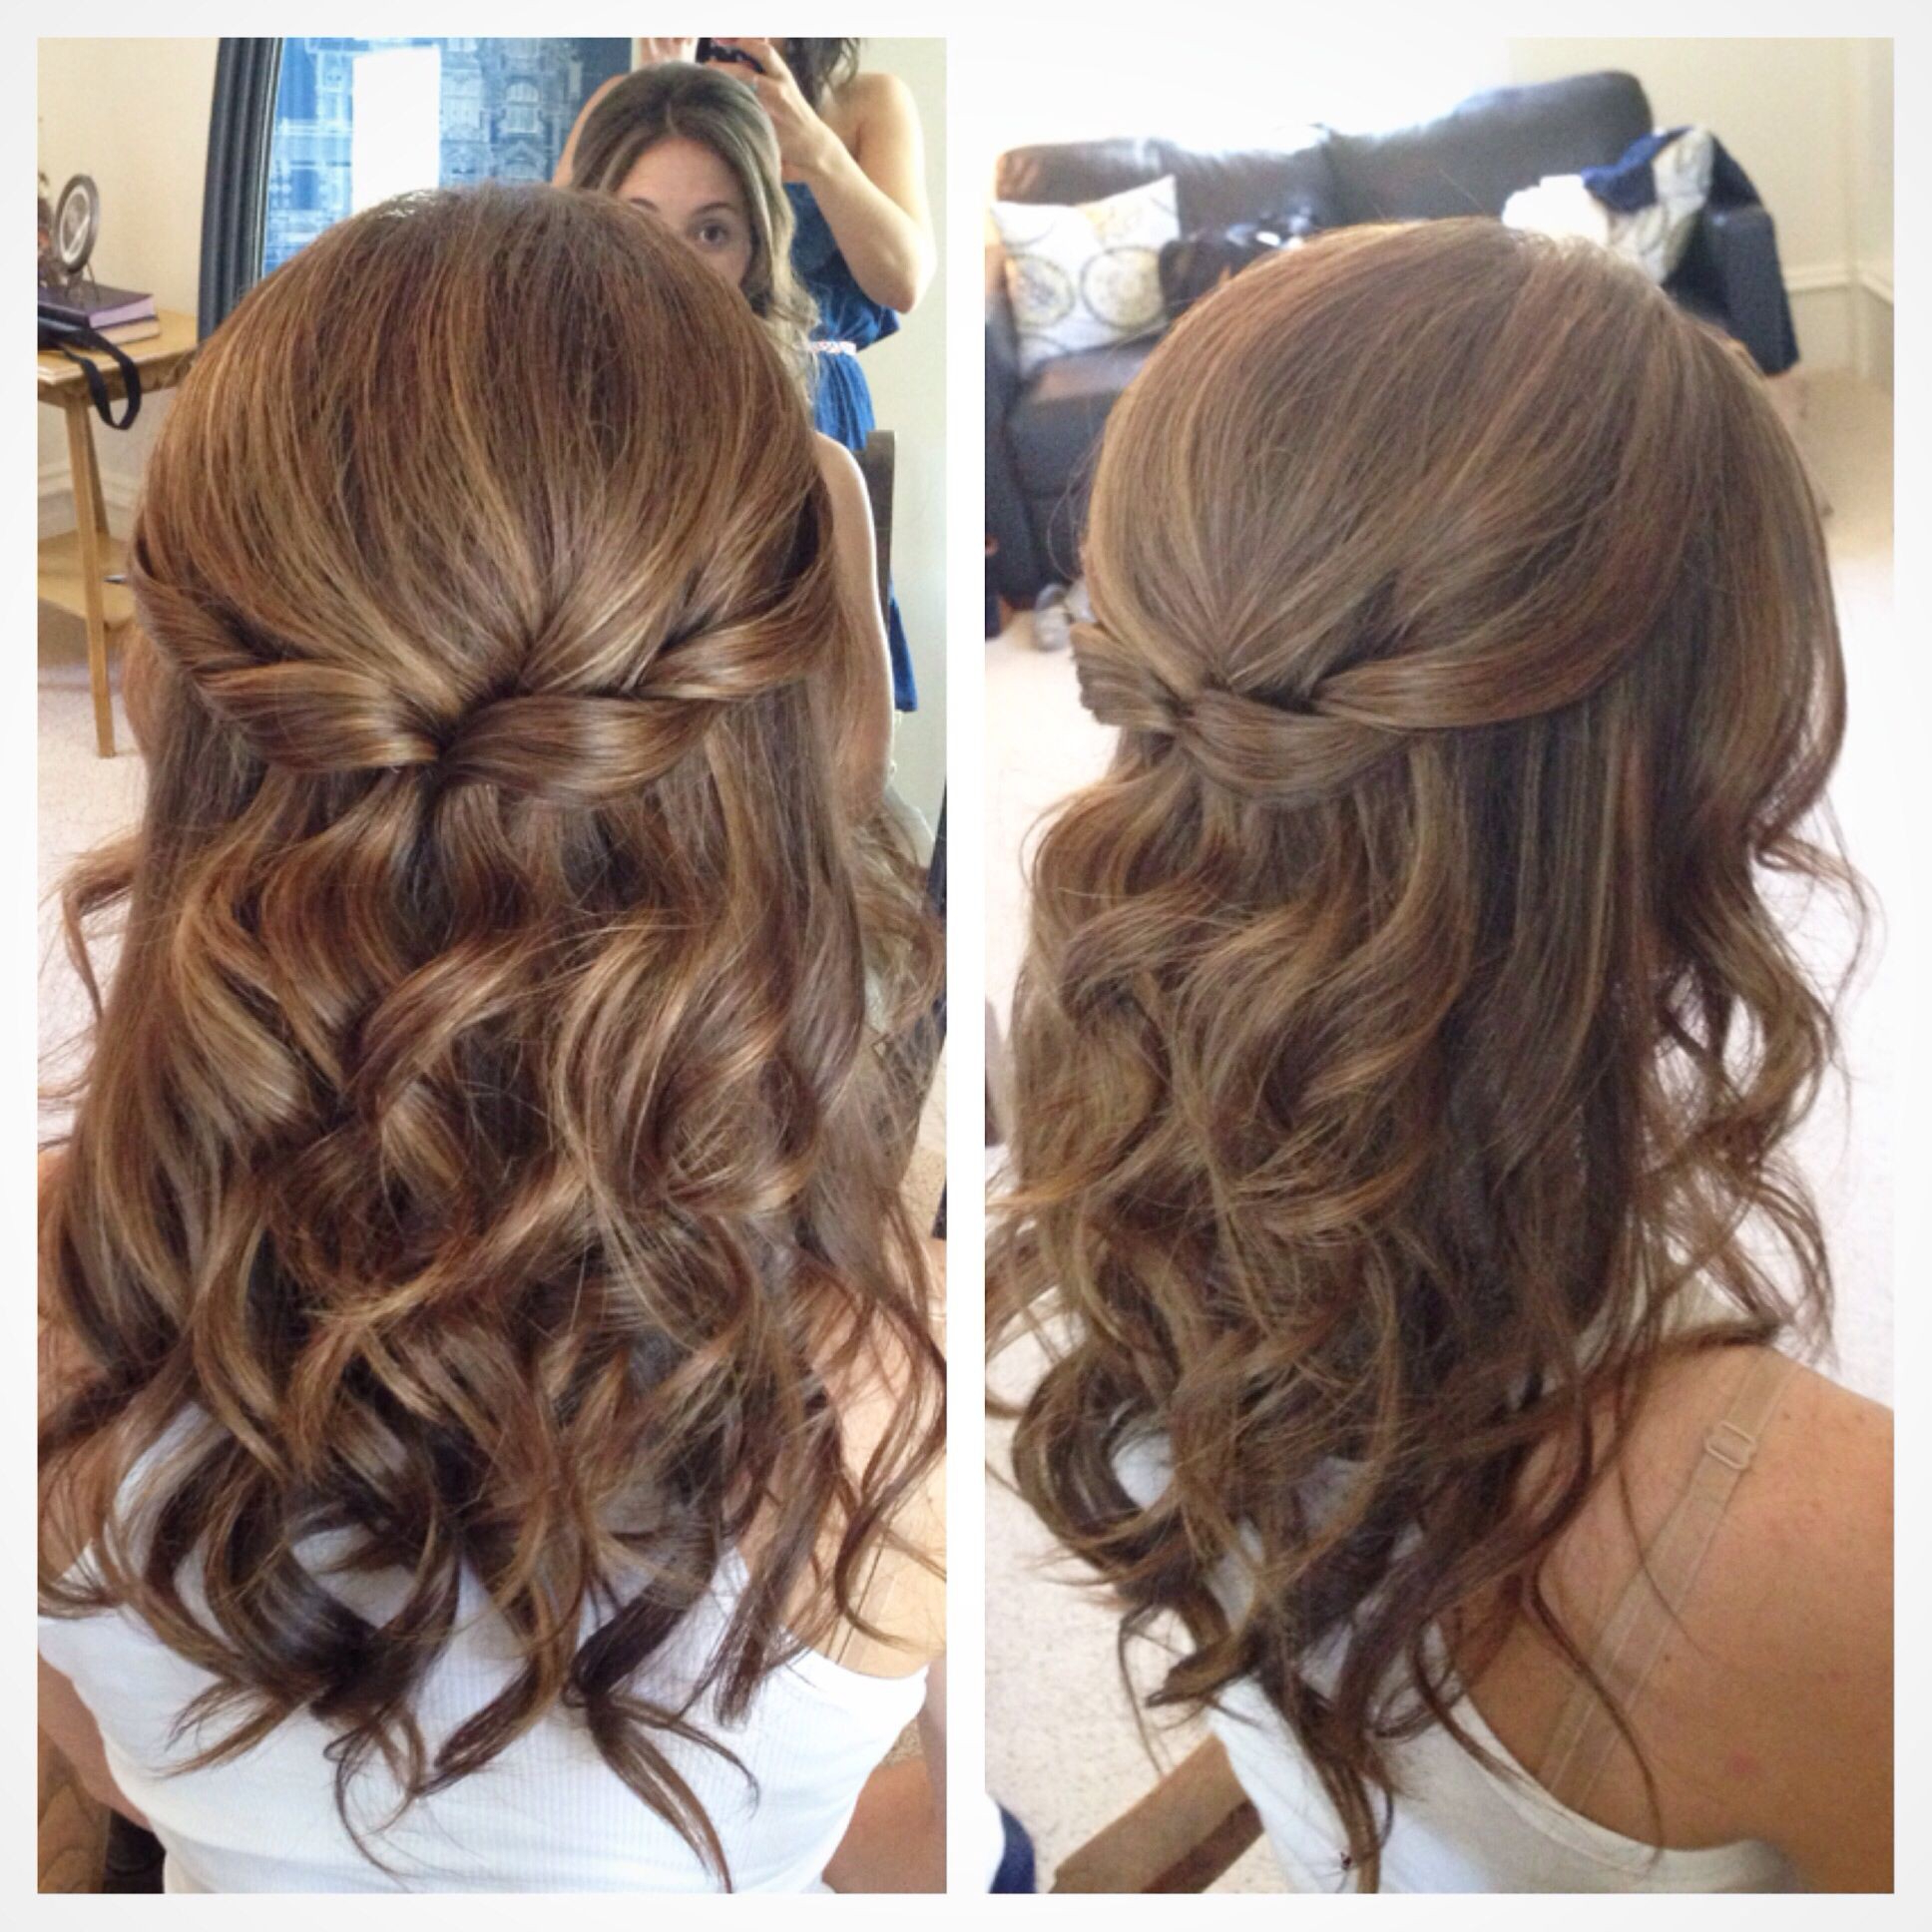 Latest Medium Hairstyles For Weddings For Bridesmaids Throughout Wedding Hairstyle : Wedding Hairstyles For Long Hair Half Up With (View 10 of 20)